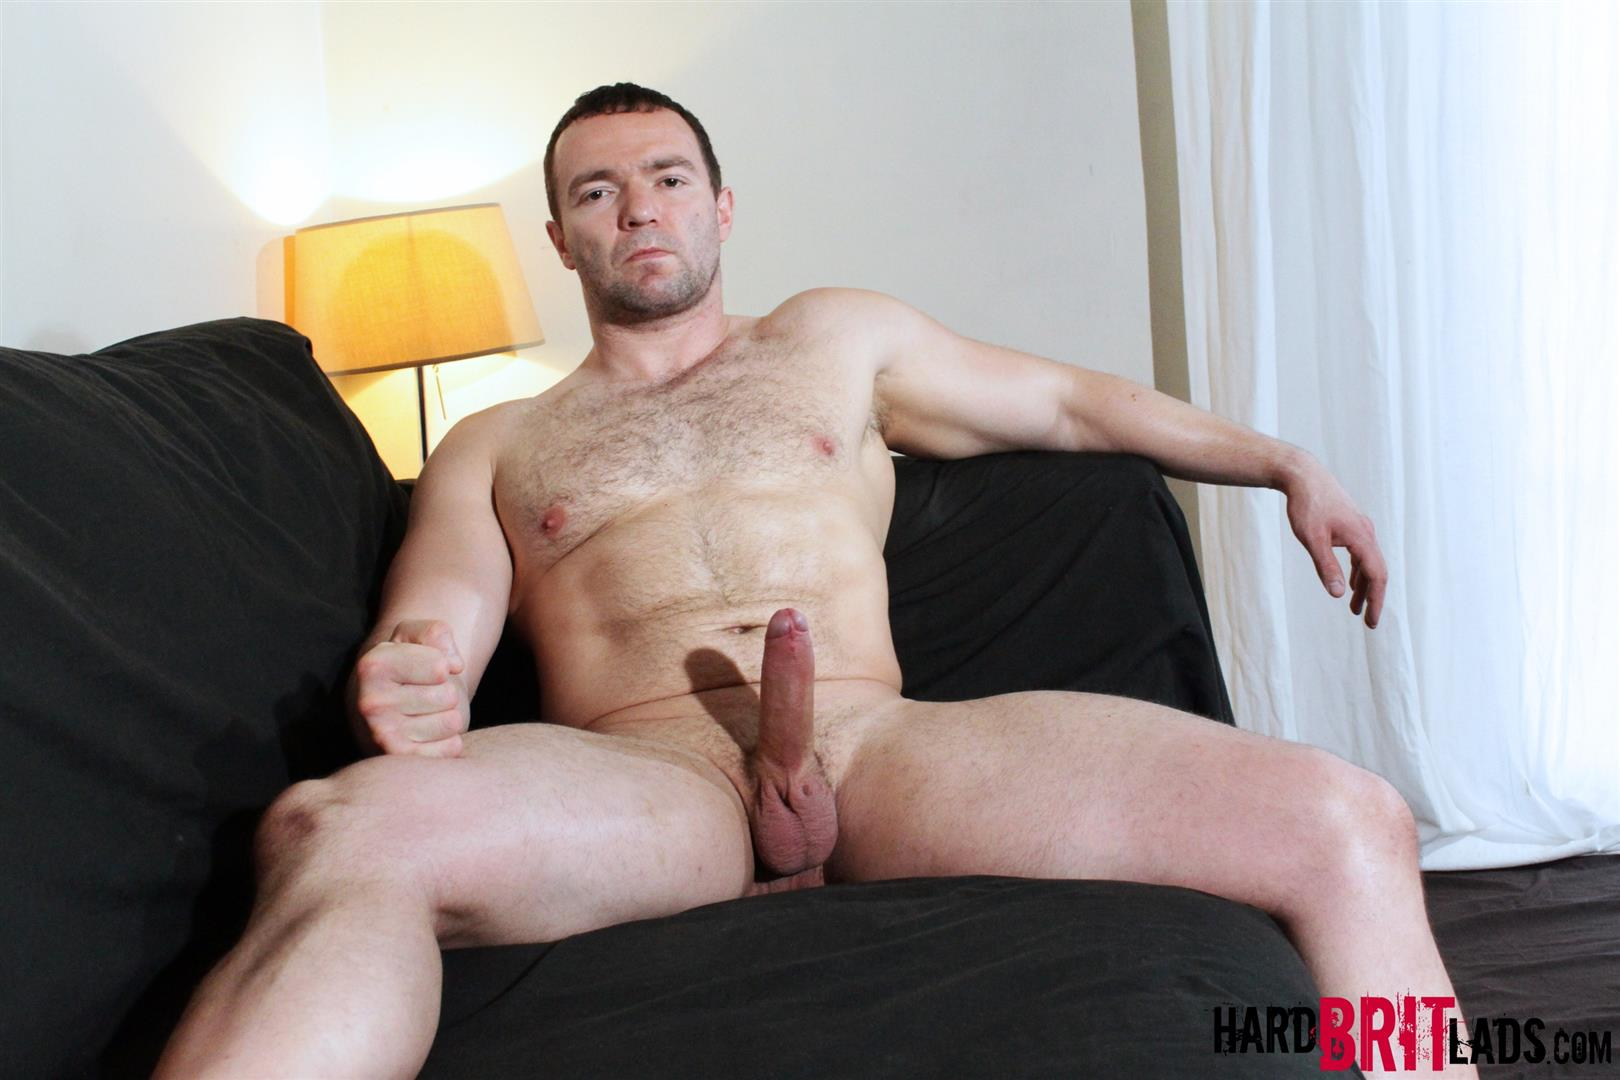 Hard Brit Lads Tom Strong Muscular Rugby Player Jerking His Big Uncut Cock Amateur Gay Porn 11 Beefy Powerlifter Rugby Player Jerking Off His Big Uncut Cock